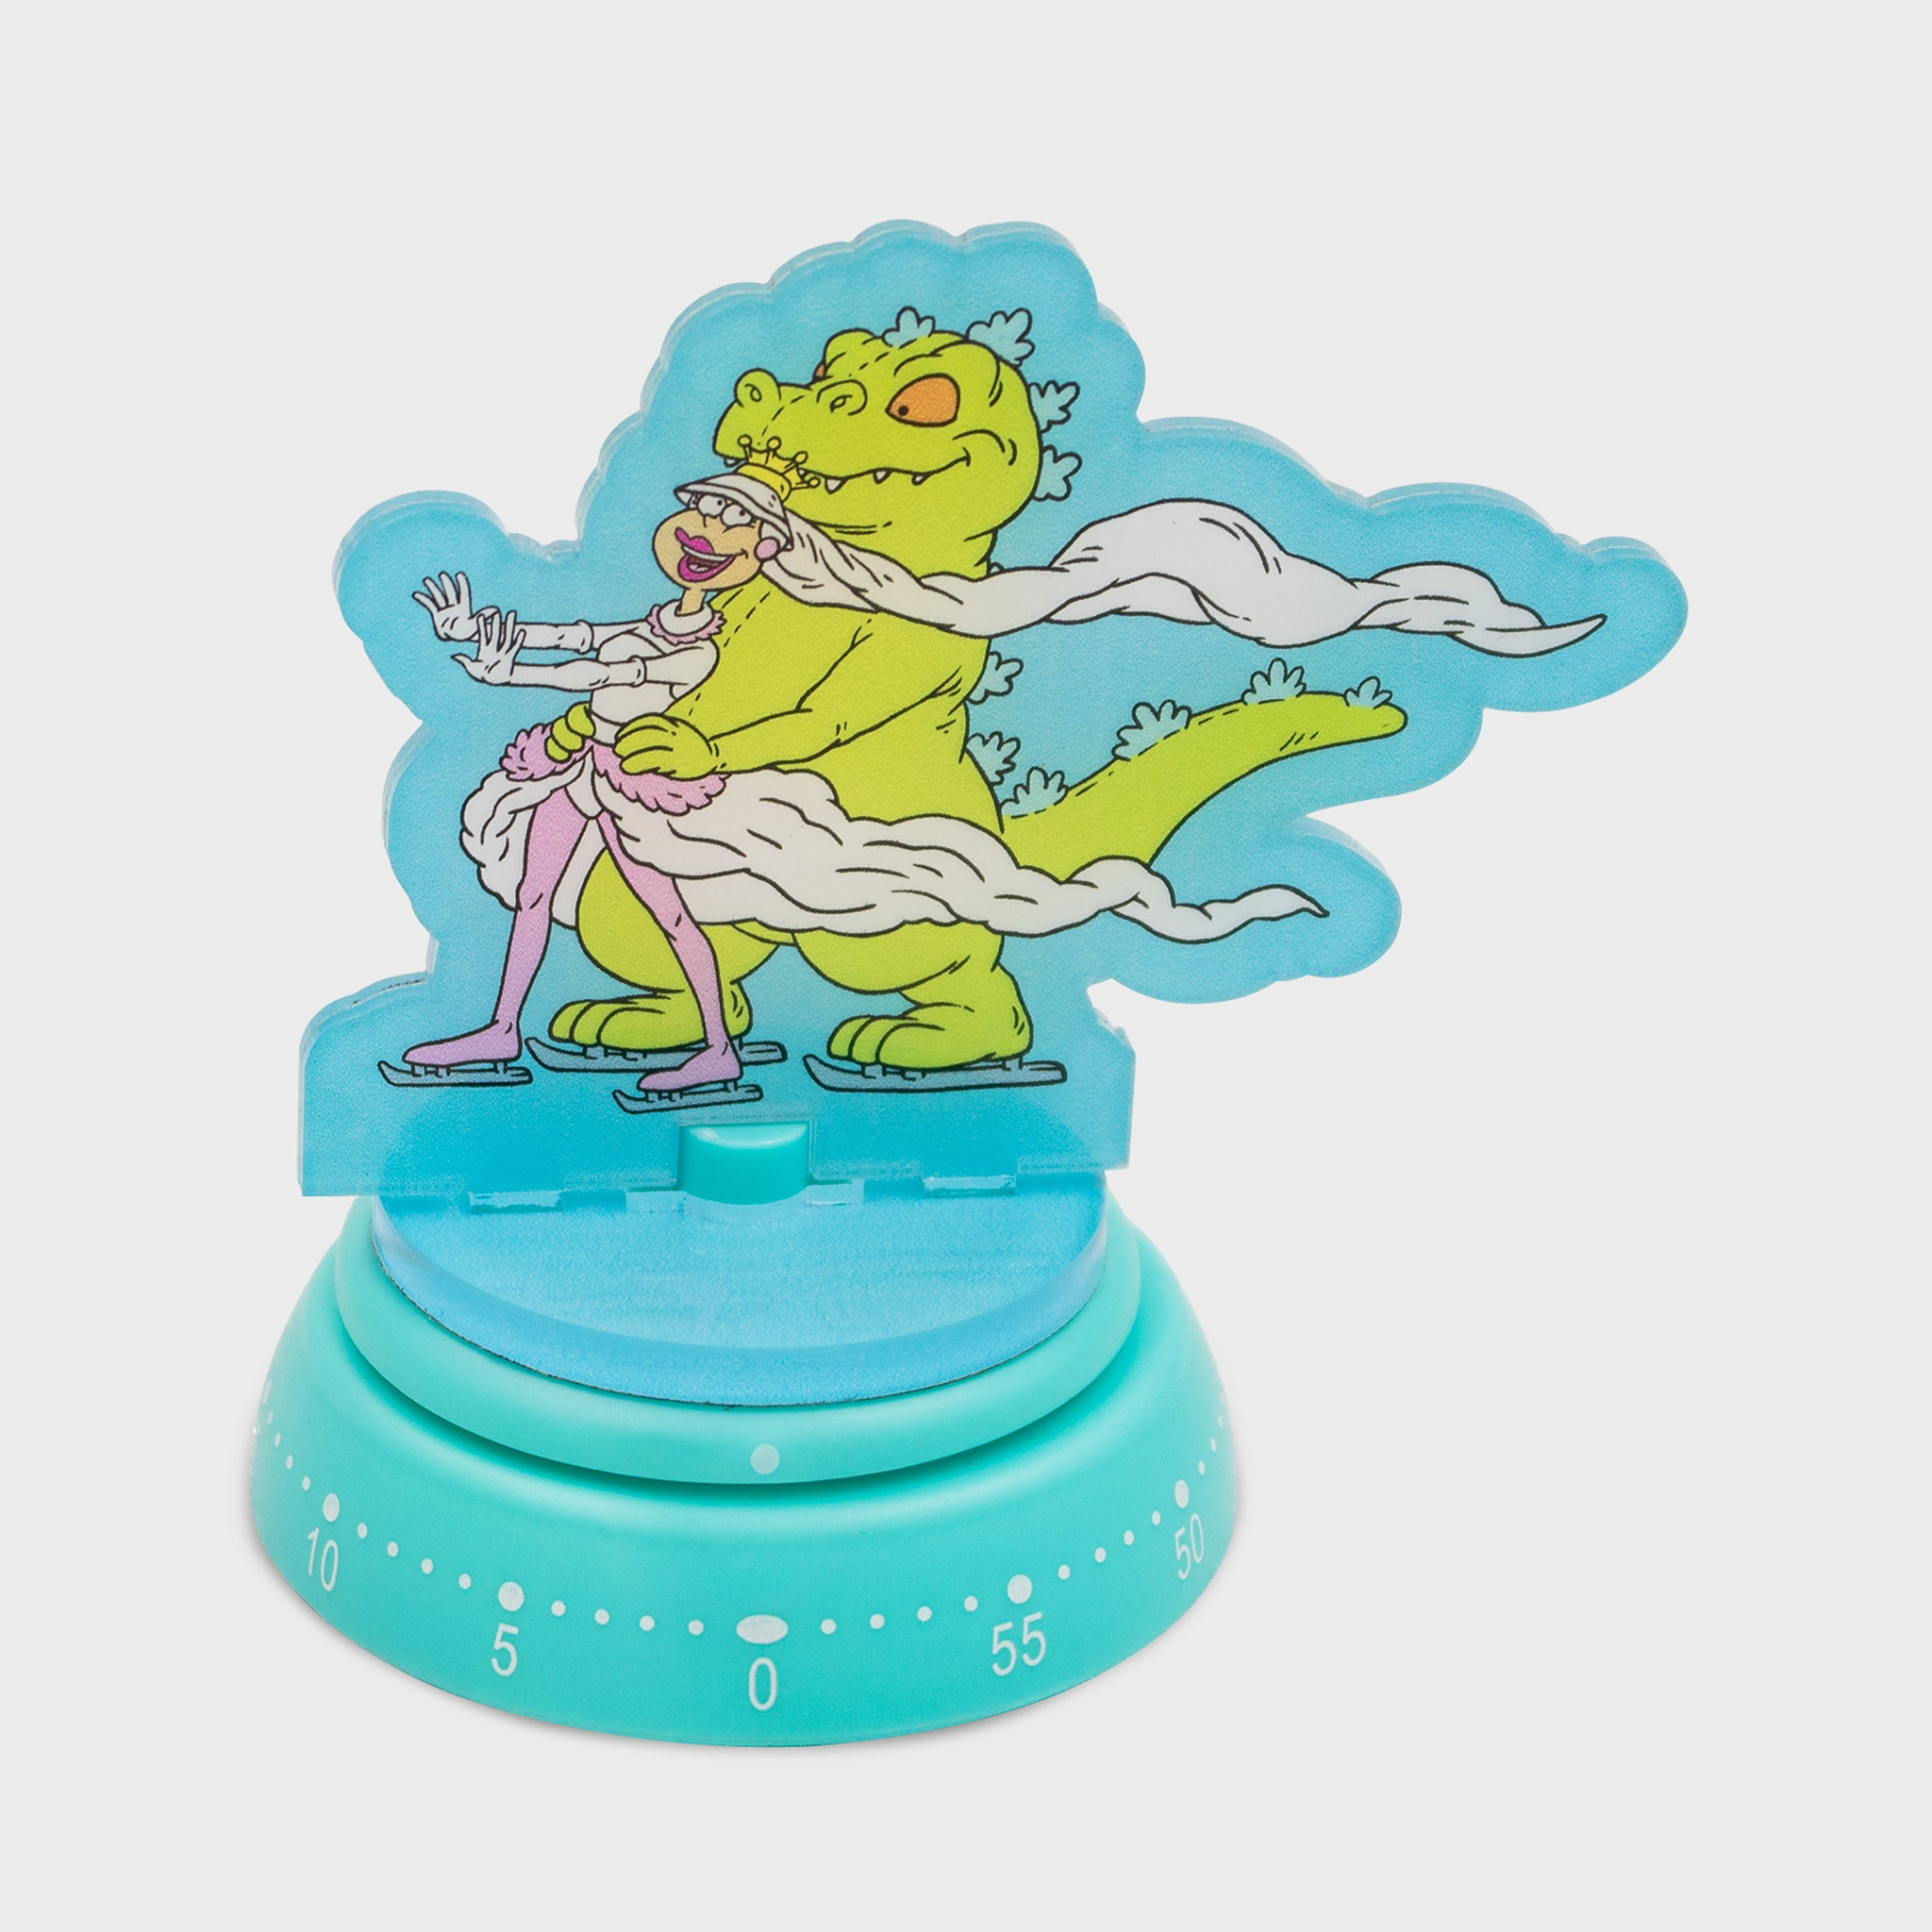 nick box nickelodeon collectible kitchen timer kitchenware reptar rugrats 90s cartoons 90s kids culturefly